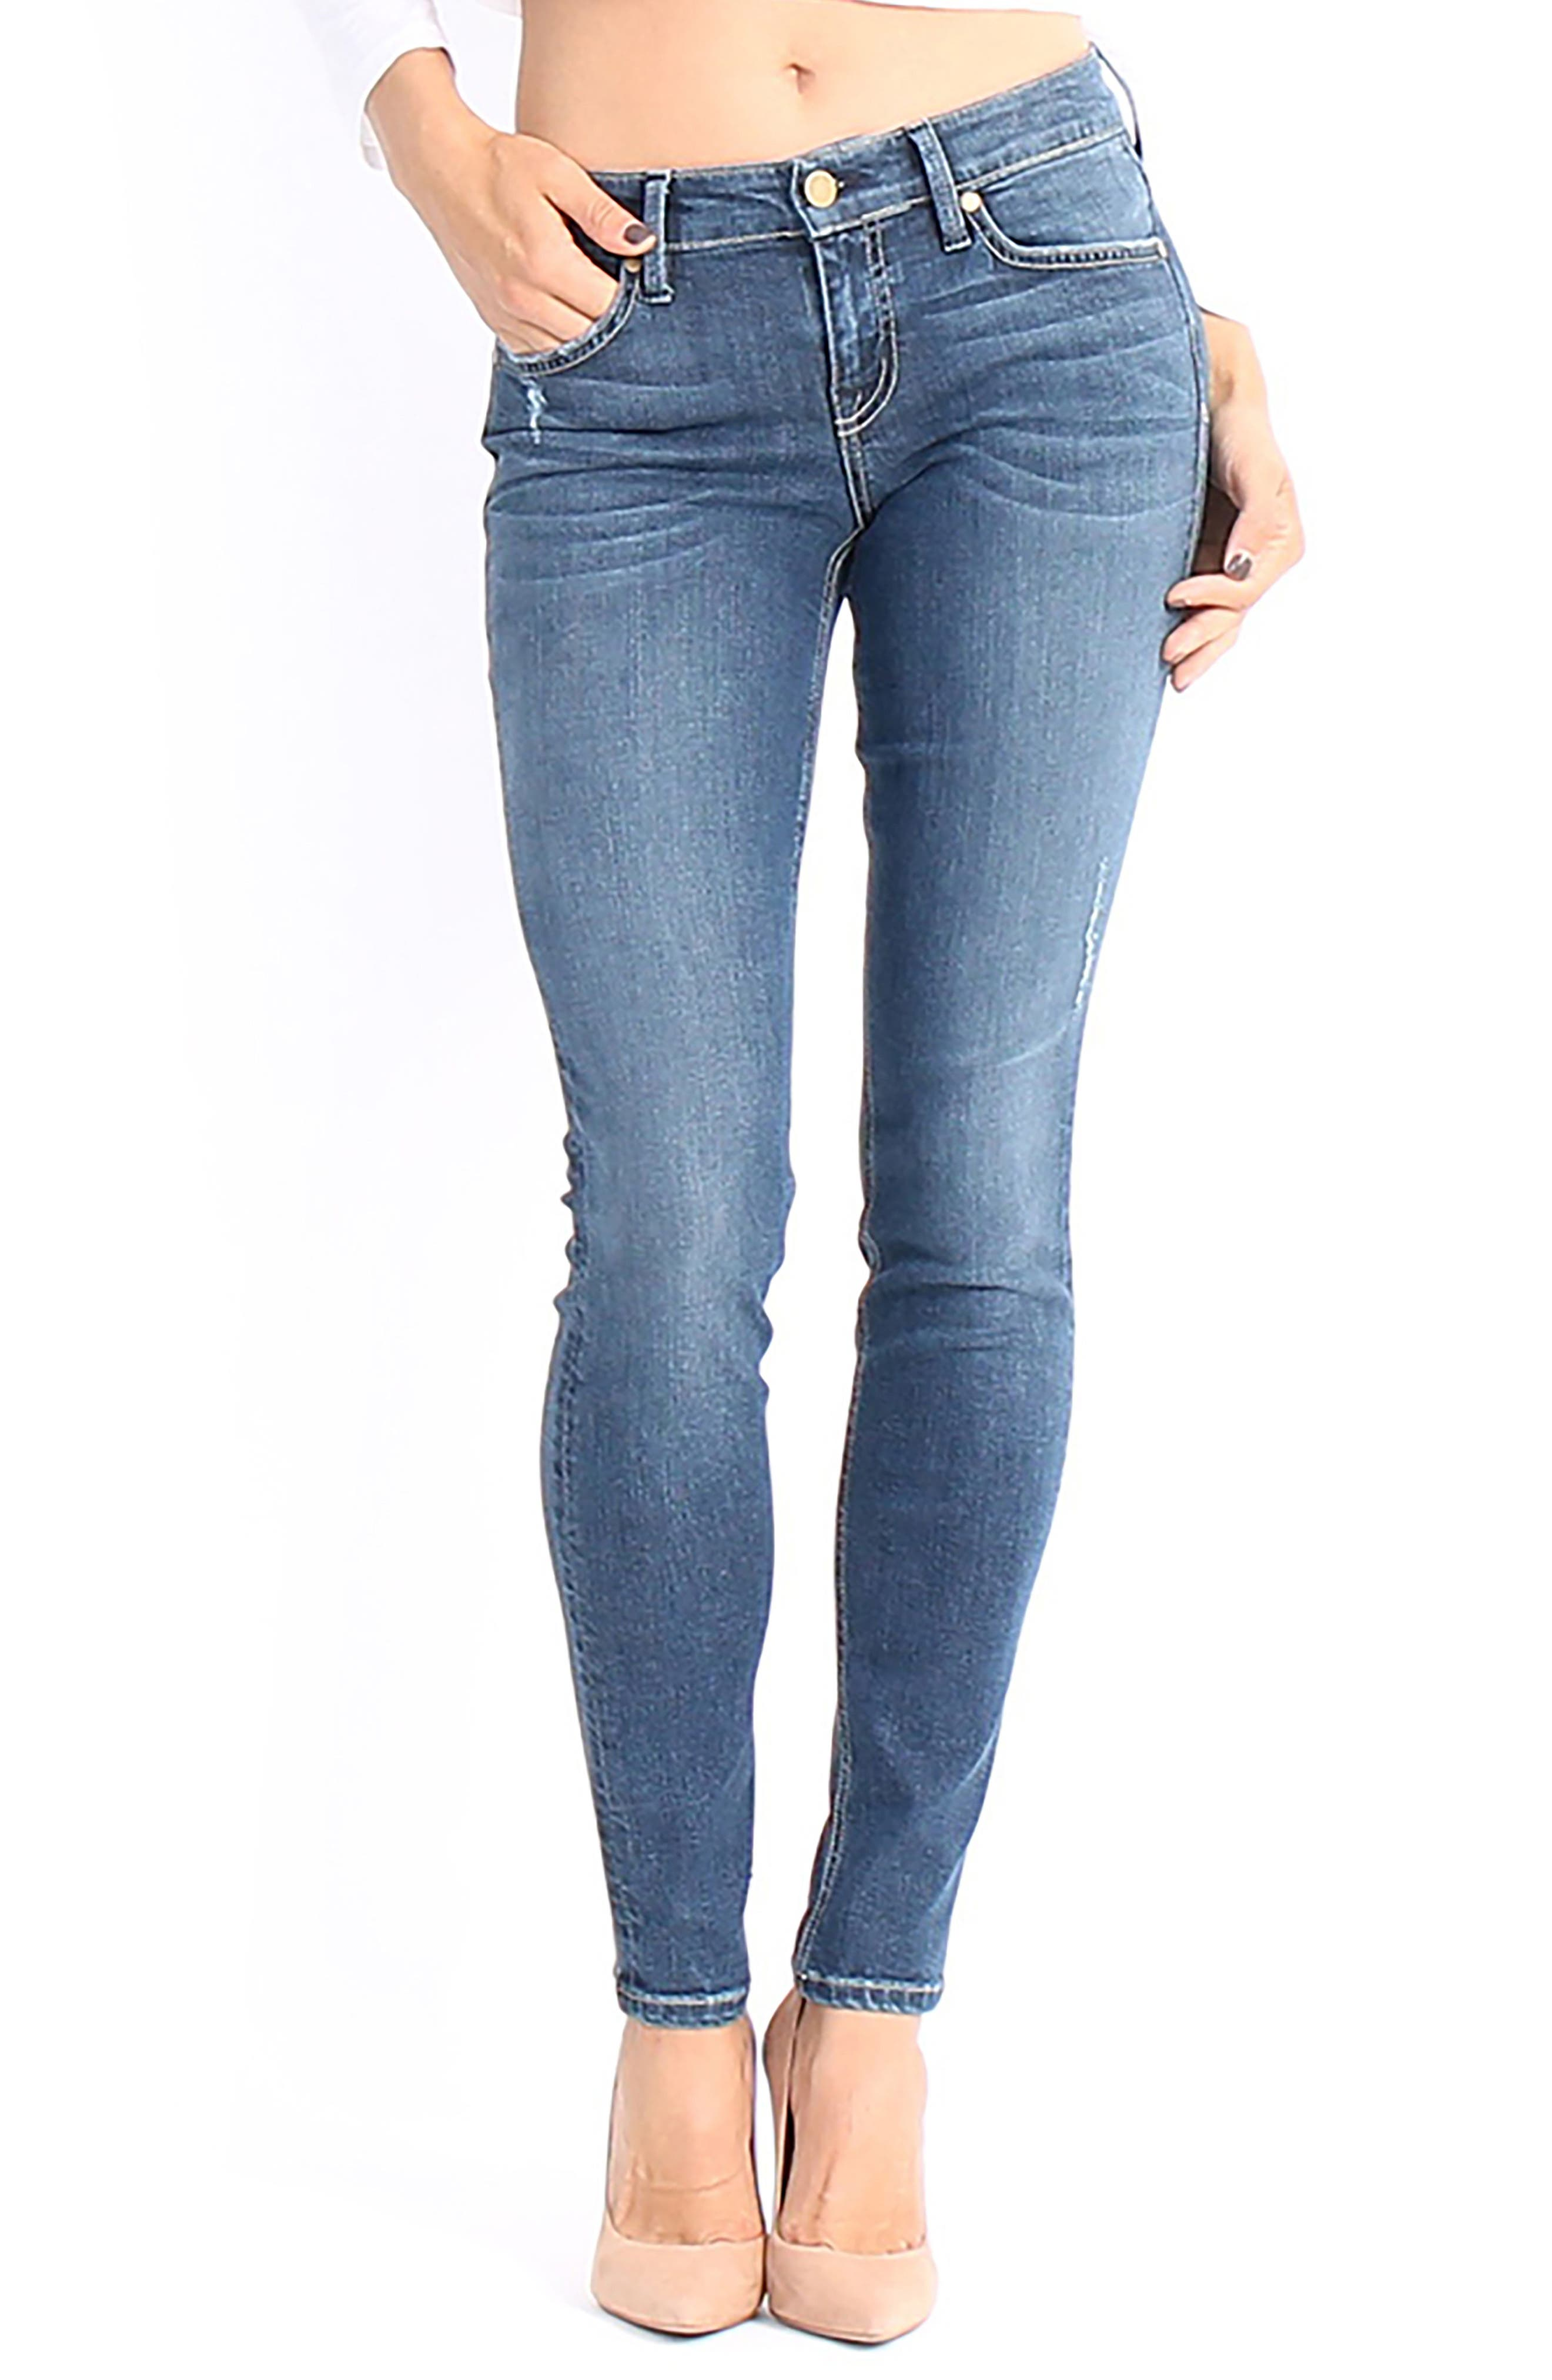 Alternate Image 1 Selected - Level 99 Lisa Stretch Distressed Super Skinny Jeans